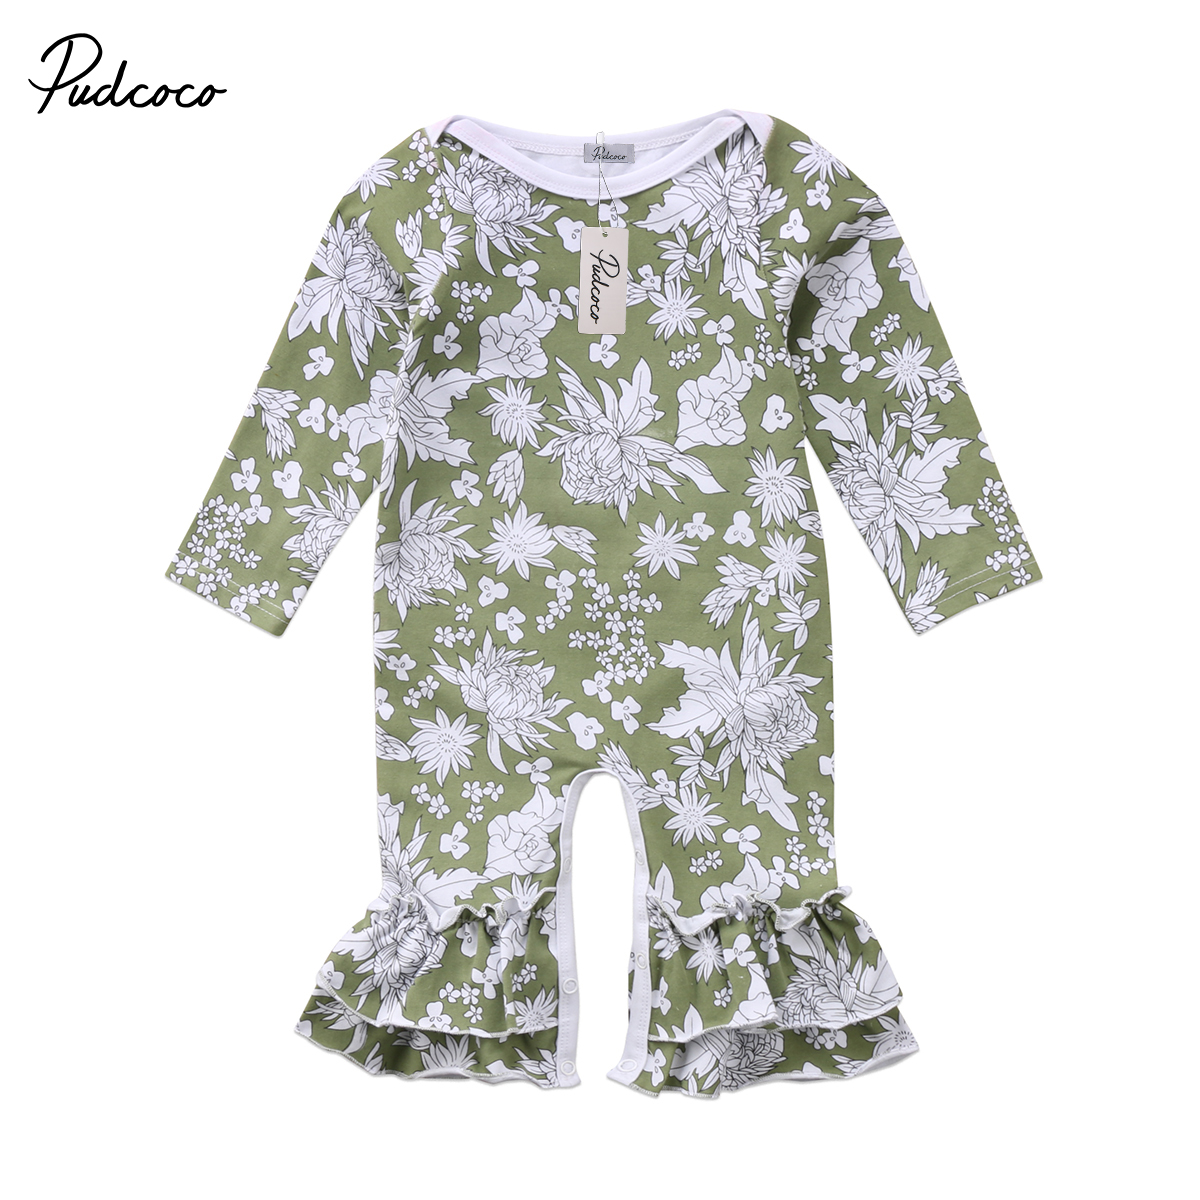 Flower Baby Girls Clothing Newborn Baby Girl Floral Cotton Long sleeve Ruffle Rompe Jumpsuit Playsuit Clothes Outfit 0-2T